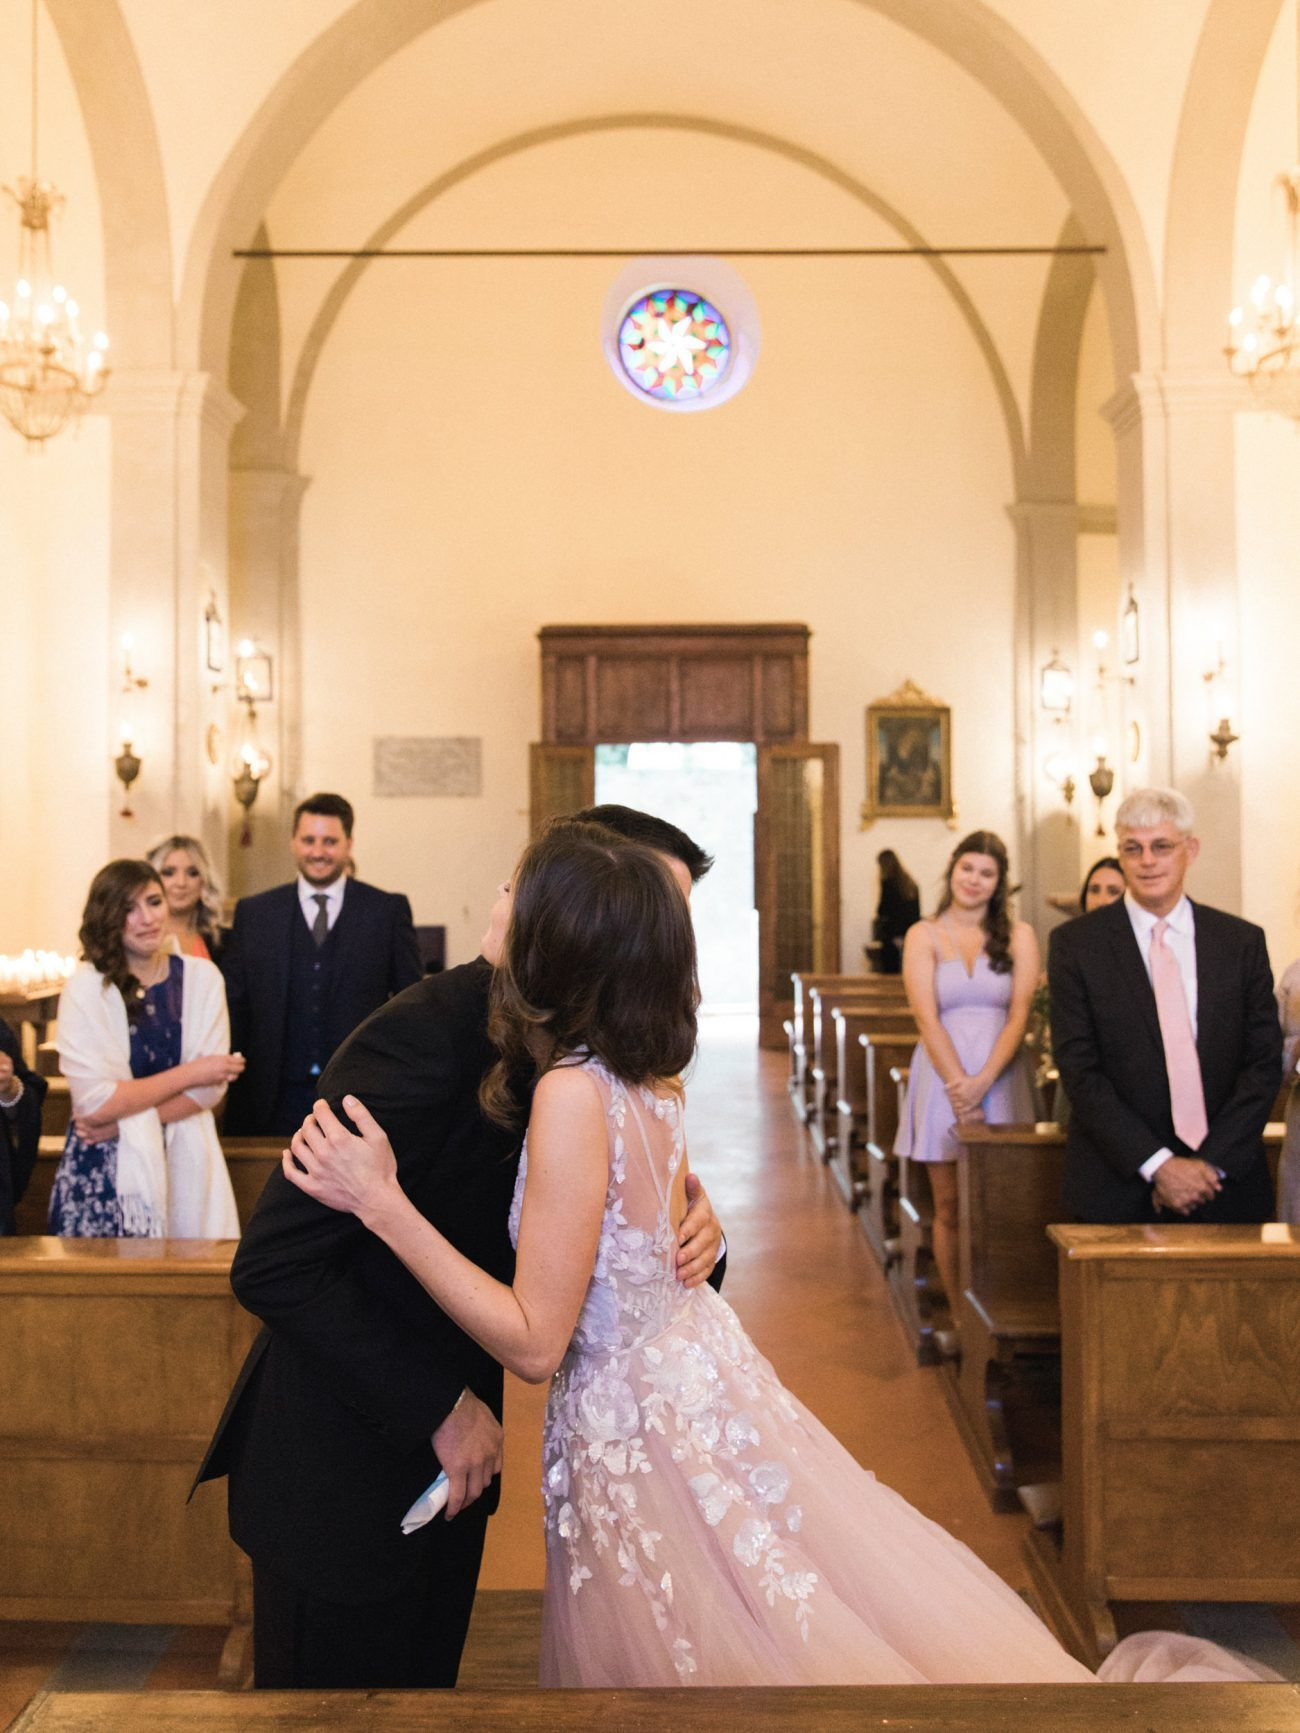 CHYMO & MORE Photography-Allison & Joshua Wedding (26)